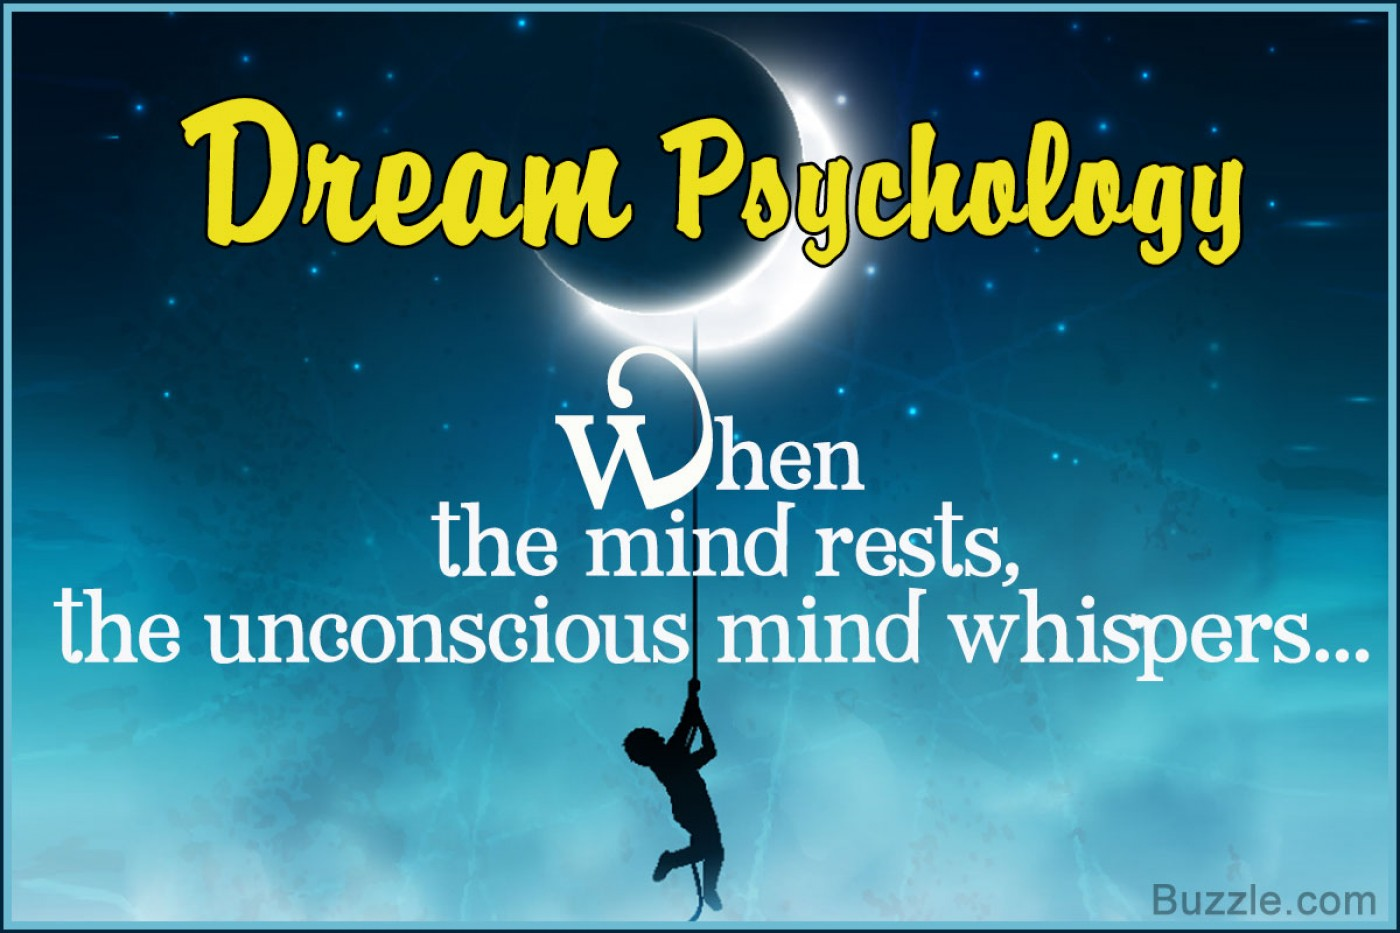 011 Psychology Of Dreams Research Paper Singular On Articles 2018 Topics 1400